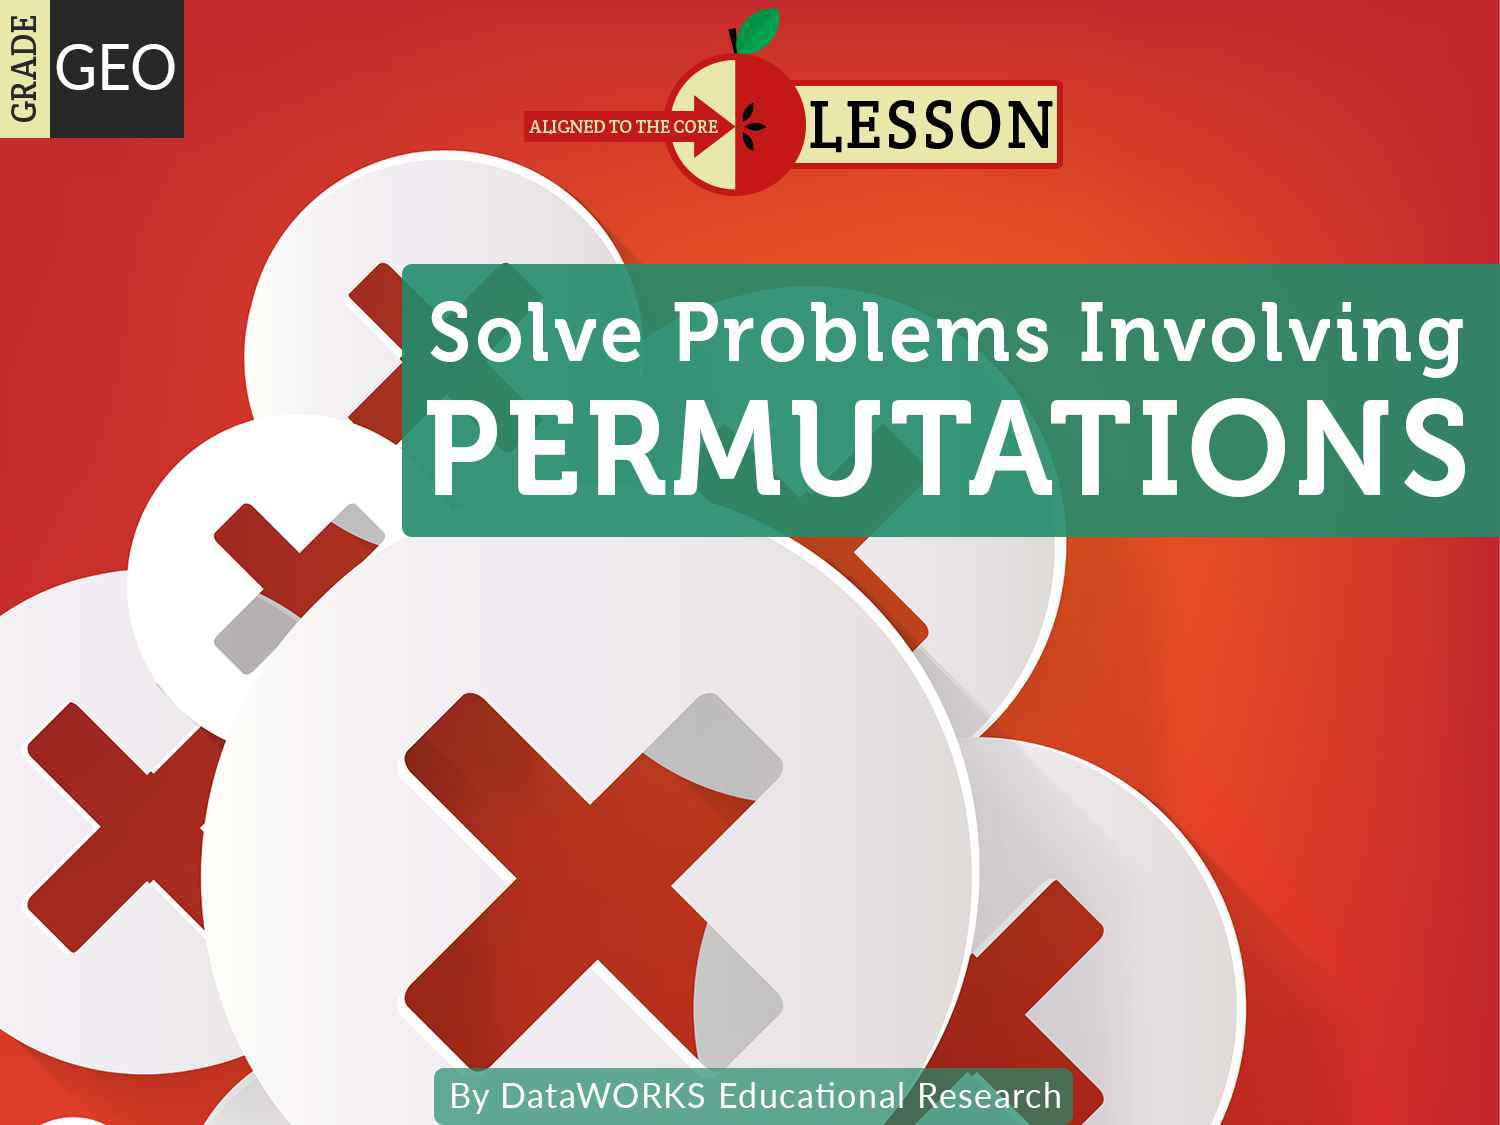 Solve Problems Involving Permutations